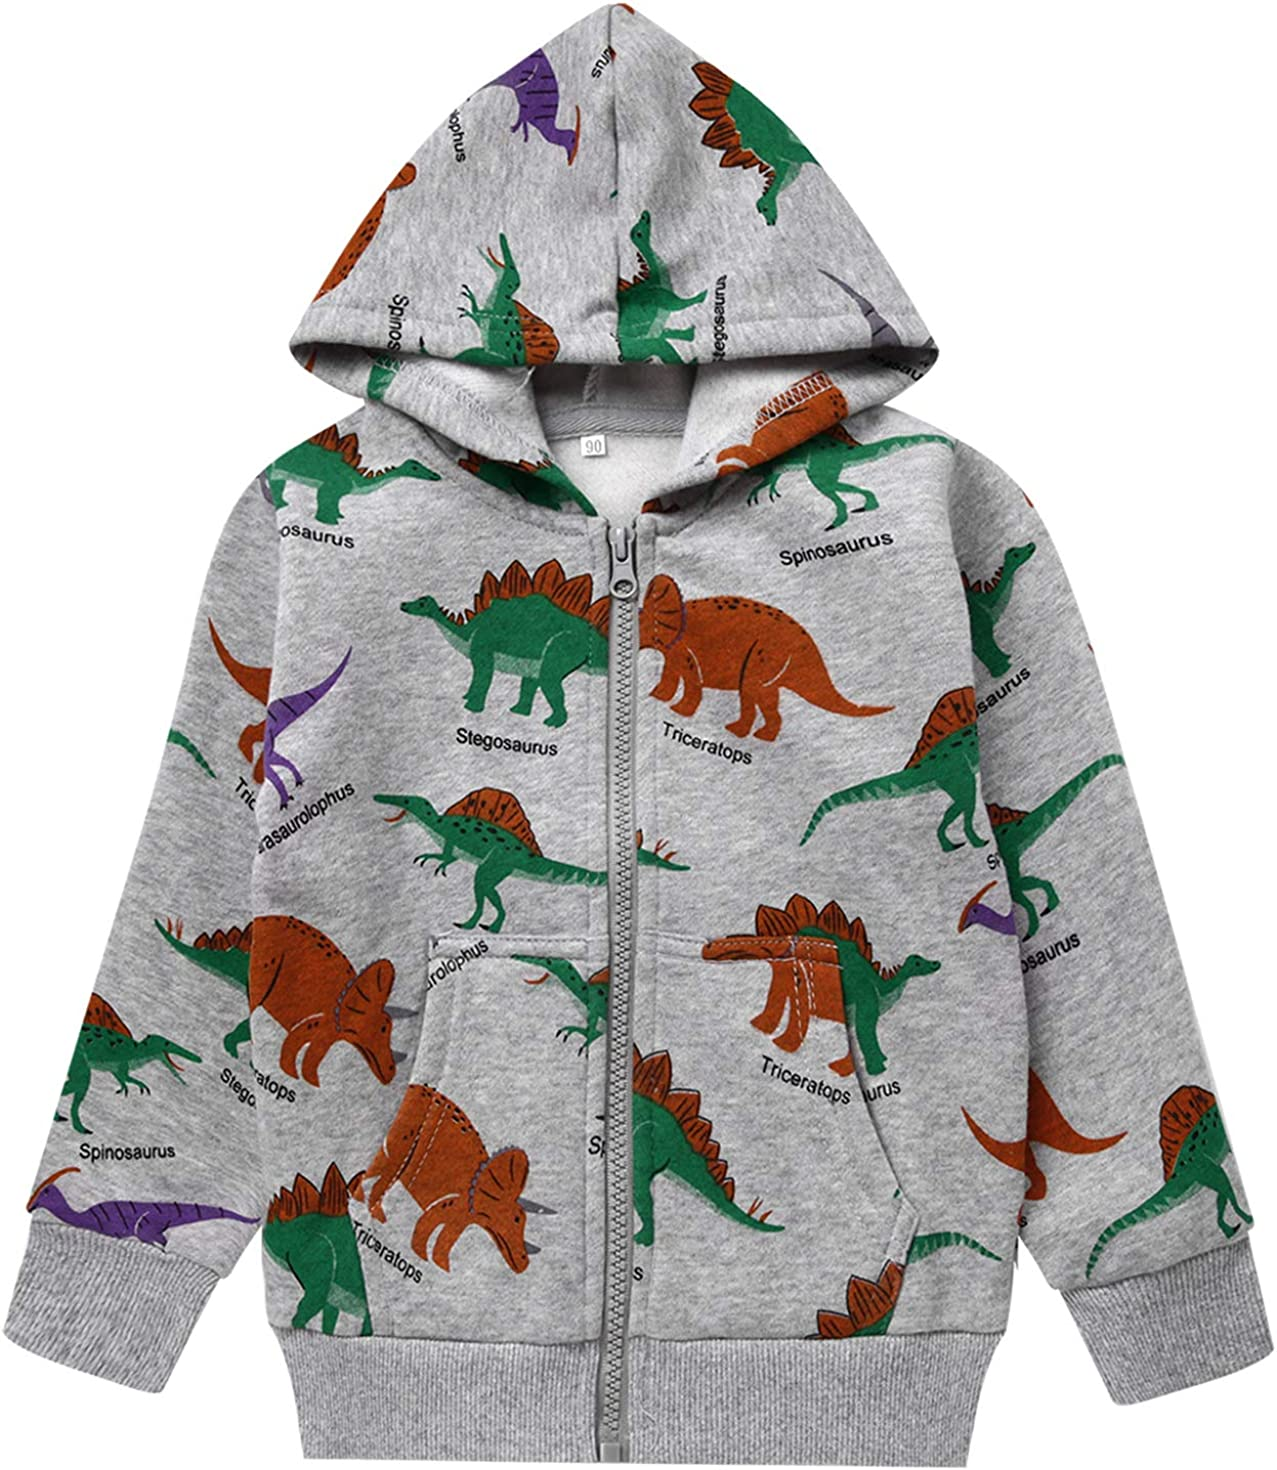 Popshion Boys Toddler Cartoon Opening large release sale Dinosaur Cool Hoodies Jacket Long Super sale period limited